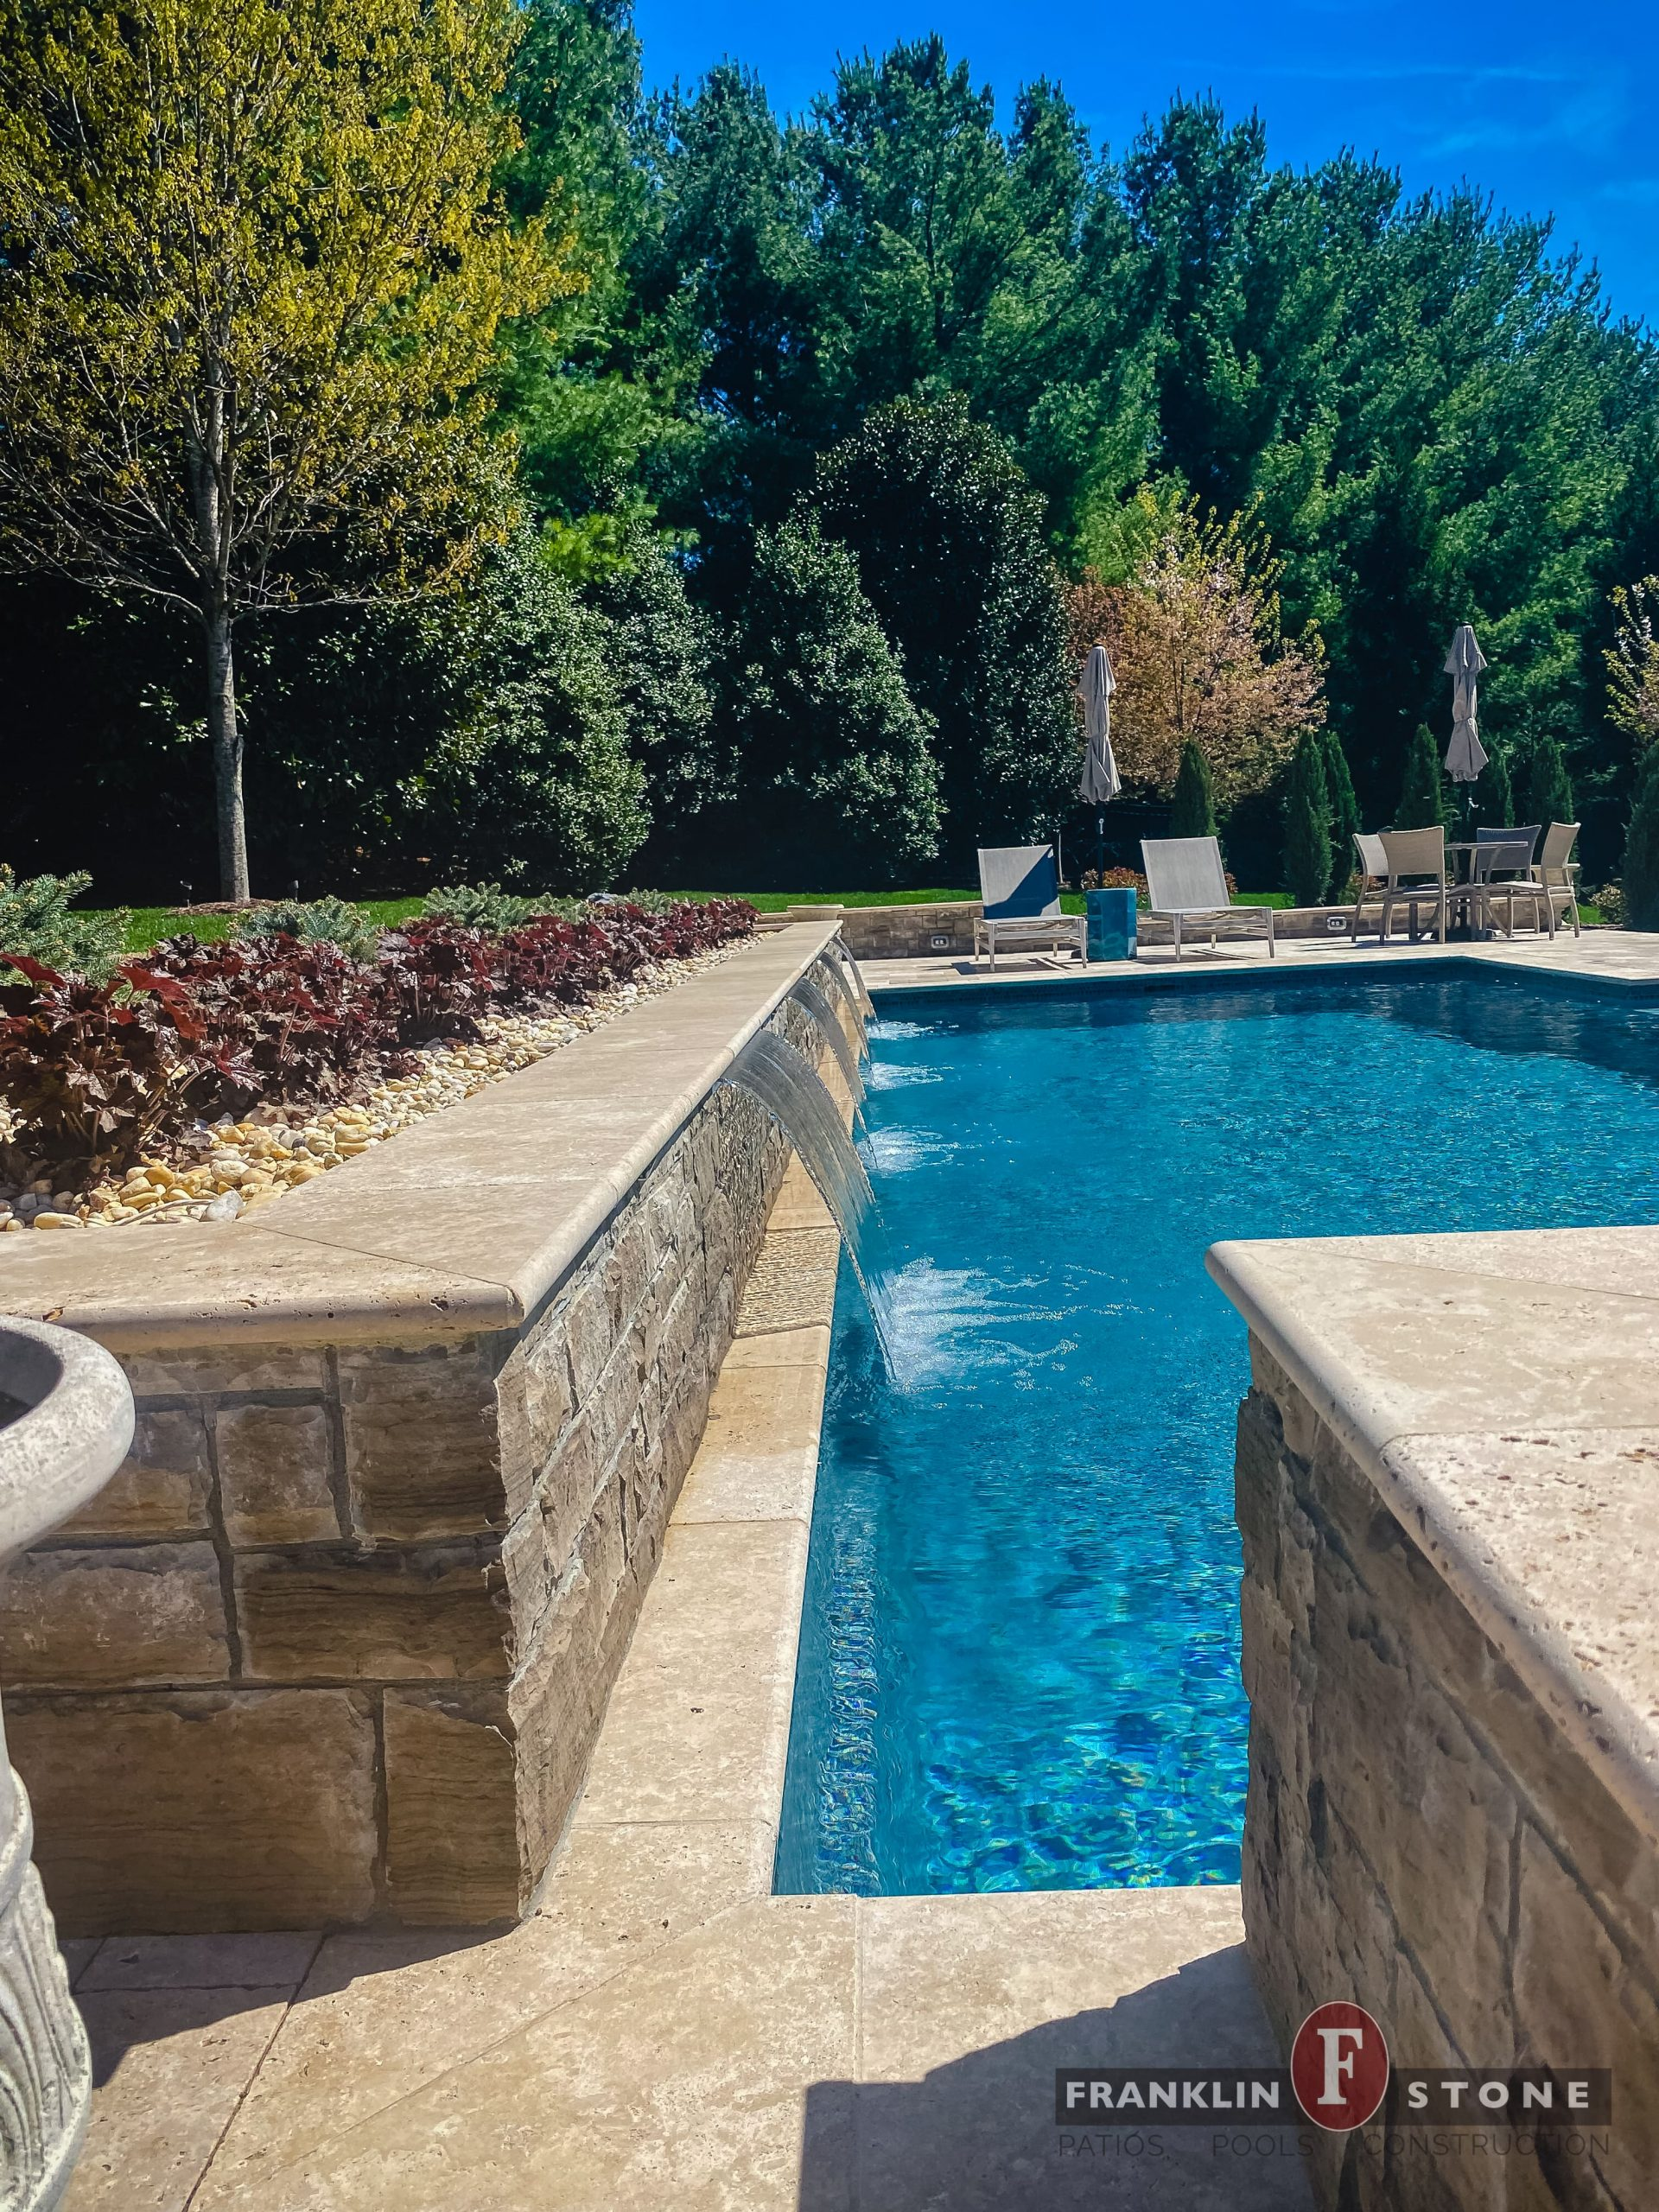 Franklin Stone pool with running water features